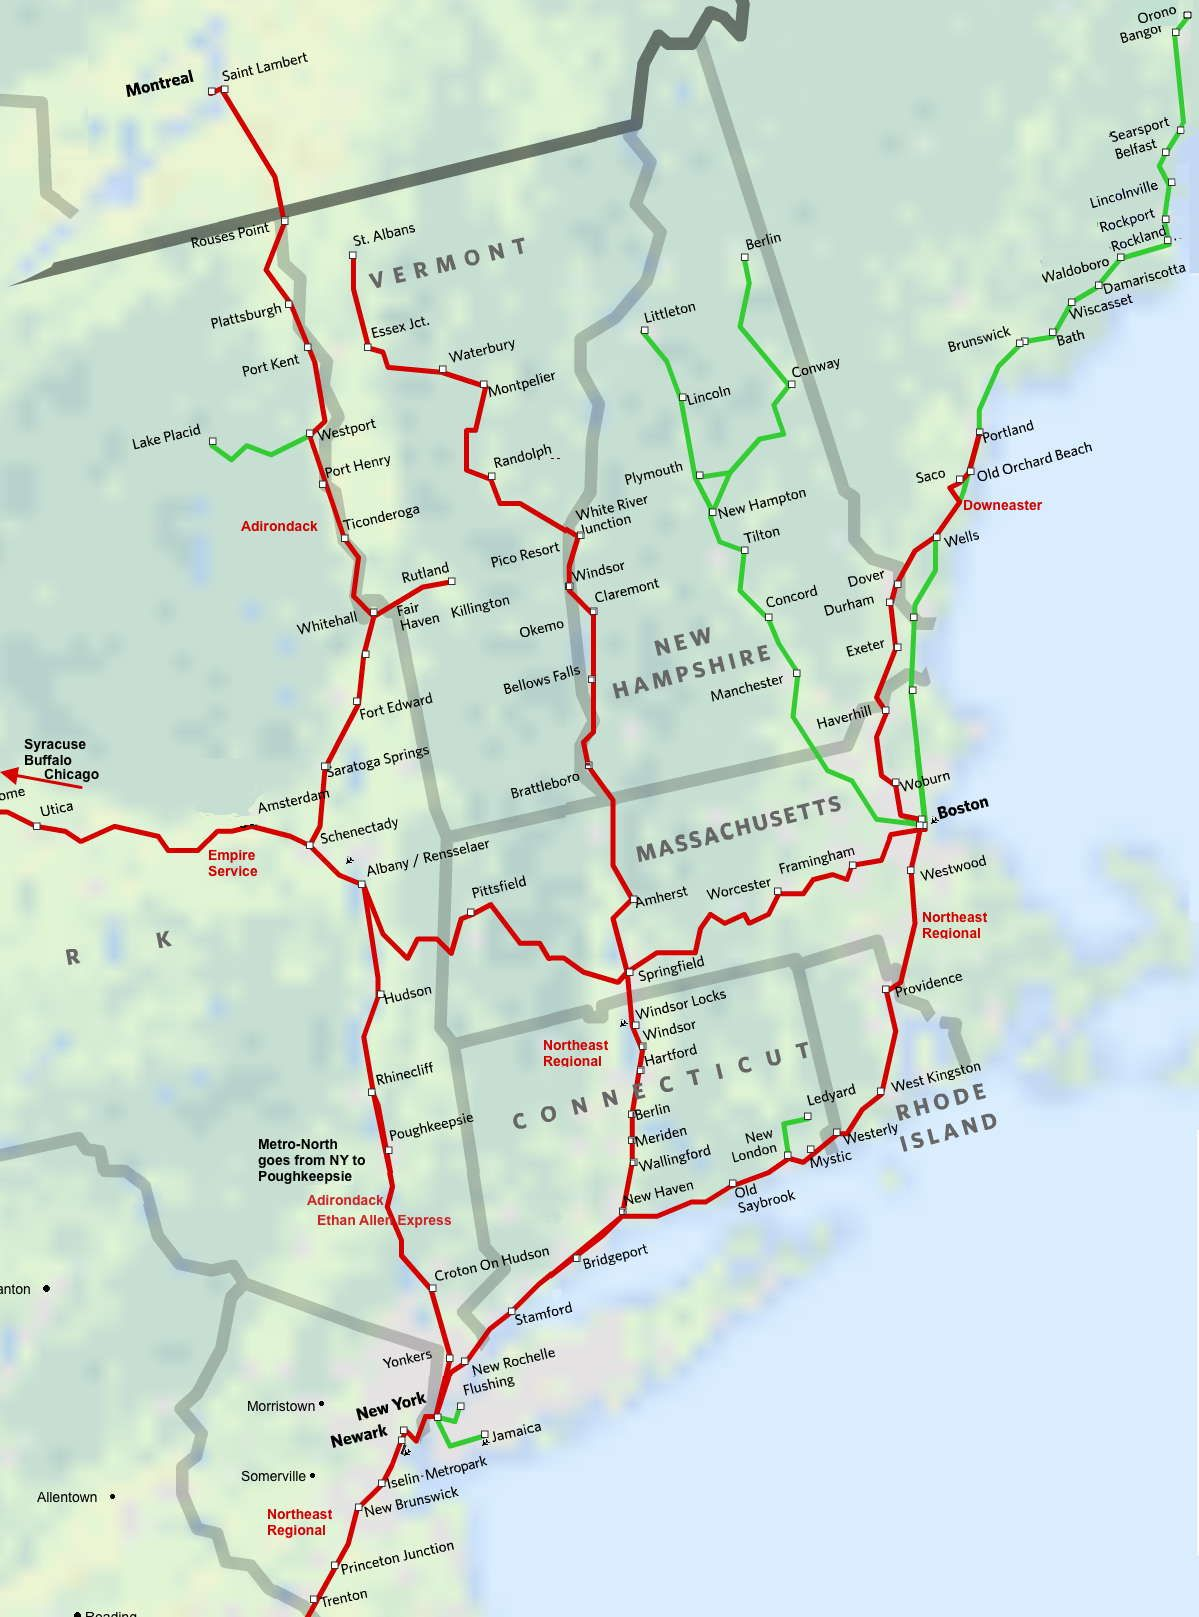 North East New England Amtrak Route Map. Super easy way to get to